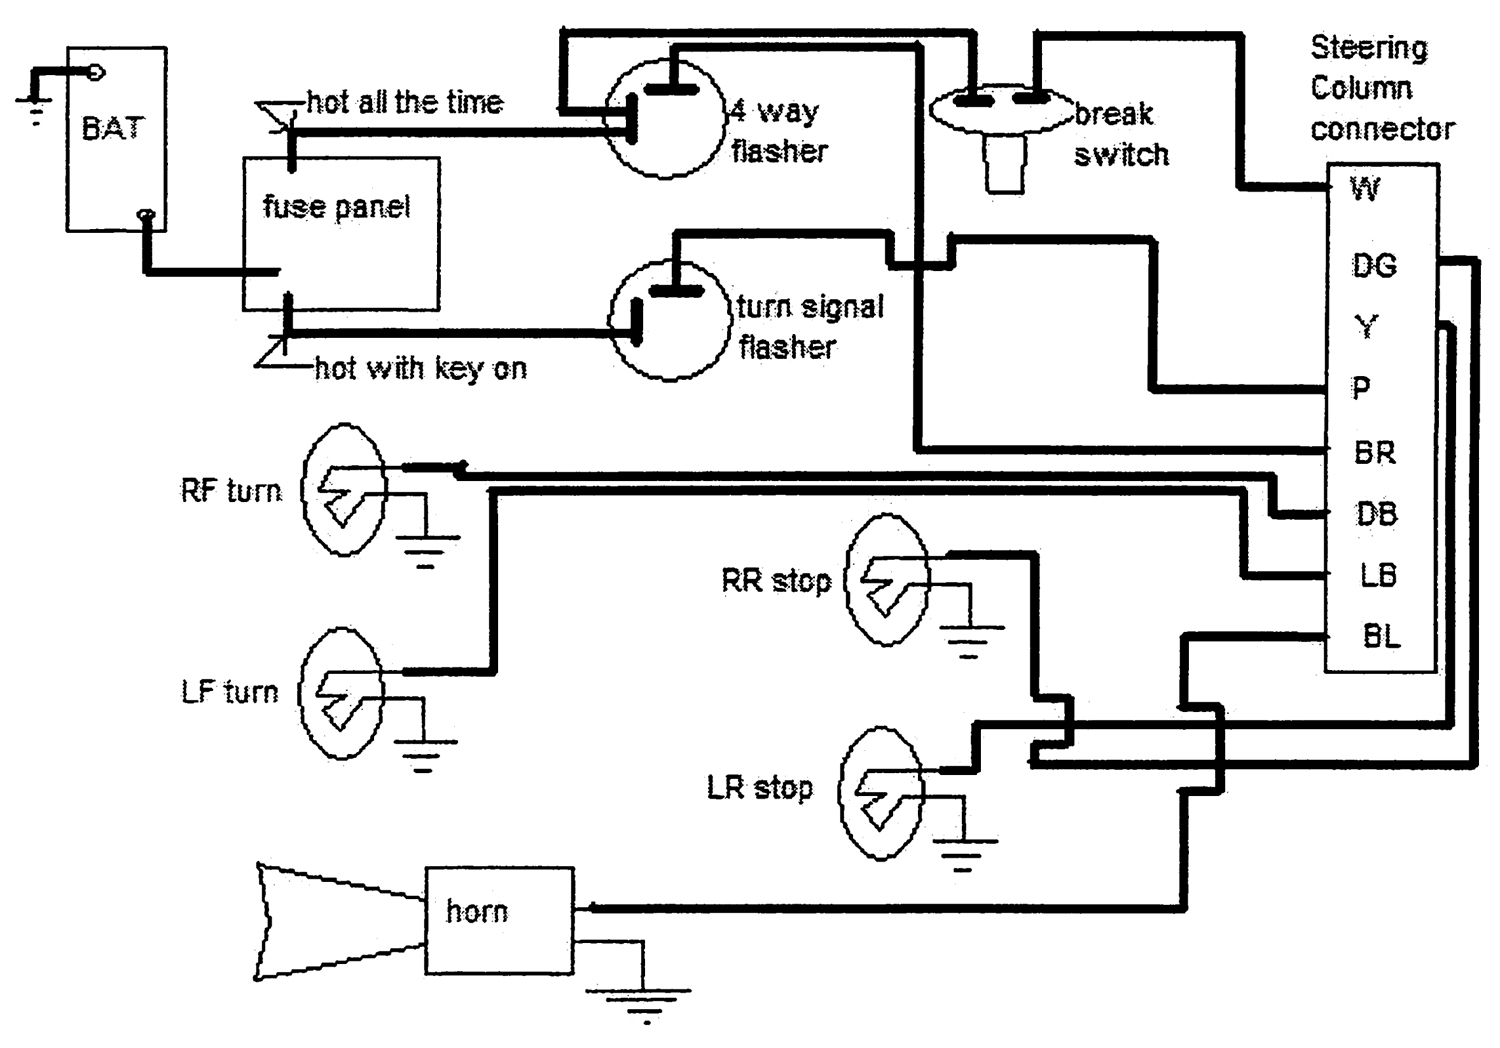 32 Gm Steering Column Wiring Diagram